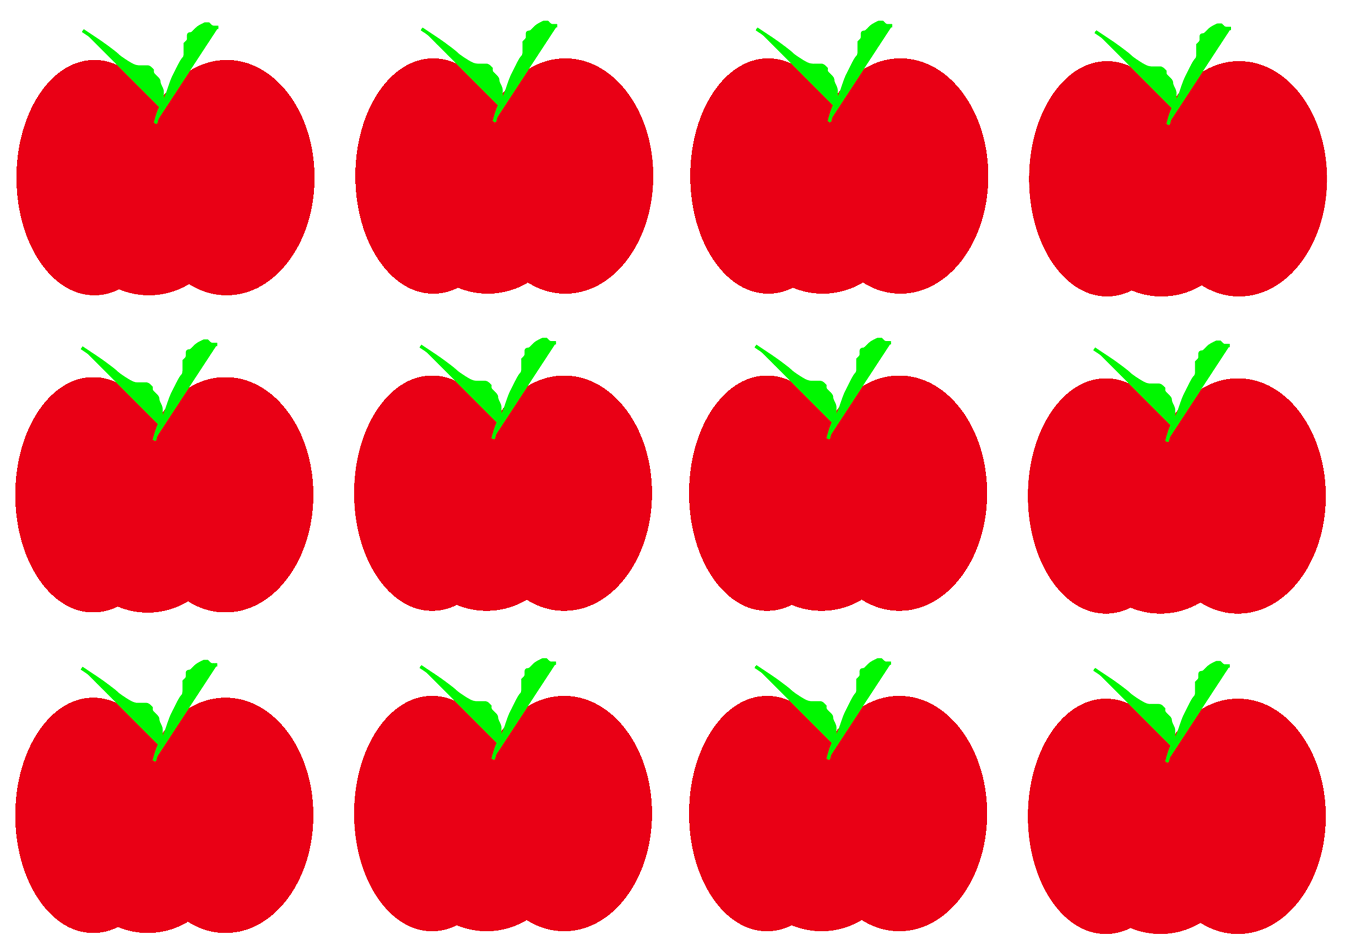 Apple halves clipart clip art royalty free stock Differentiated Best of Math 3 | How Many Apples? clip art royalty free stock